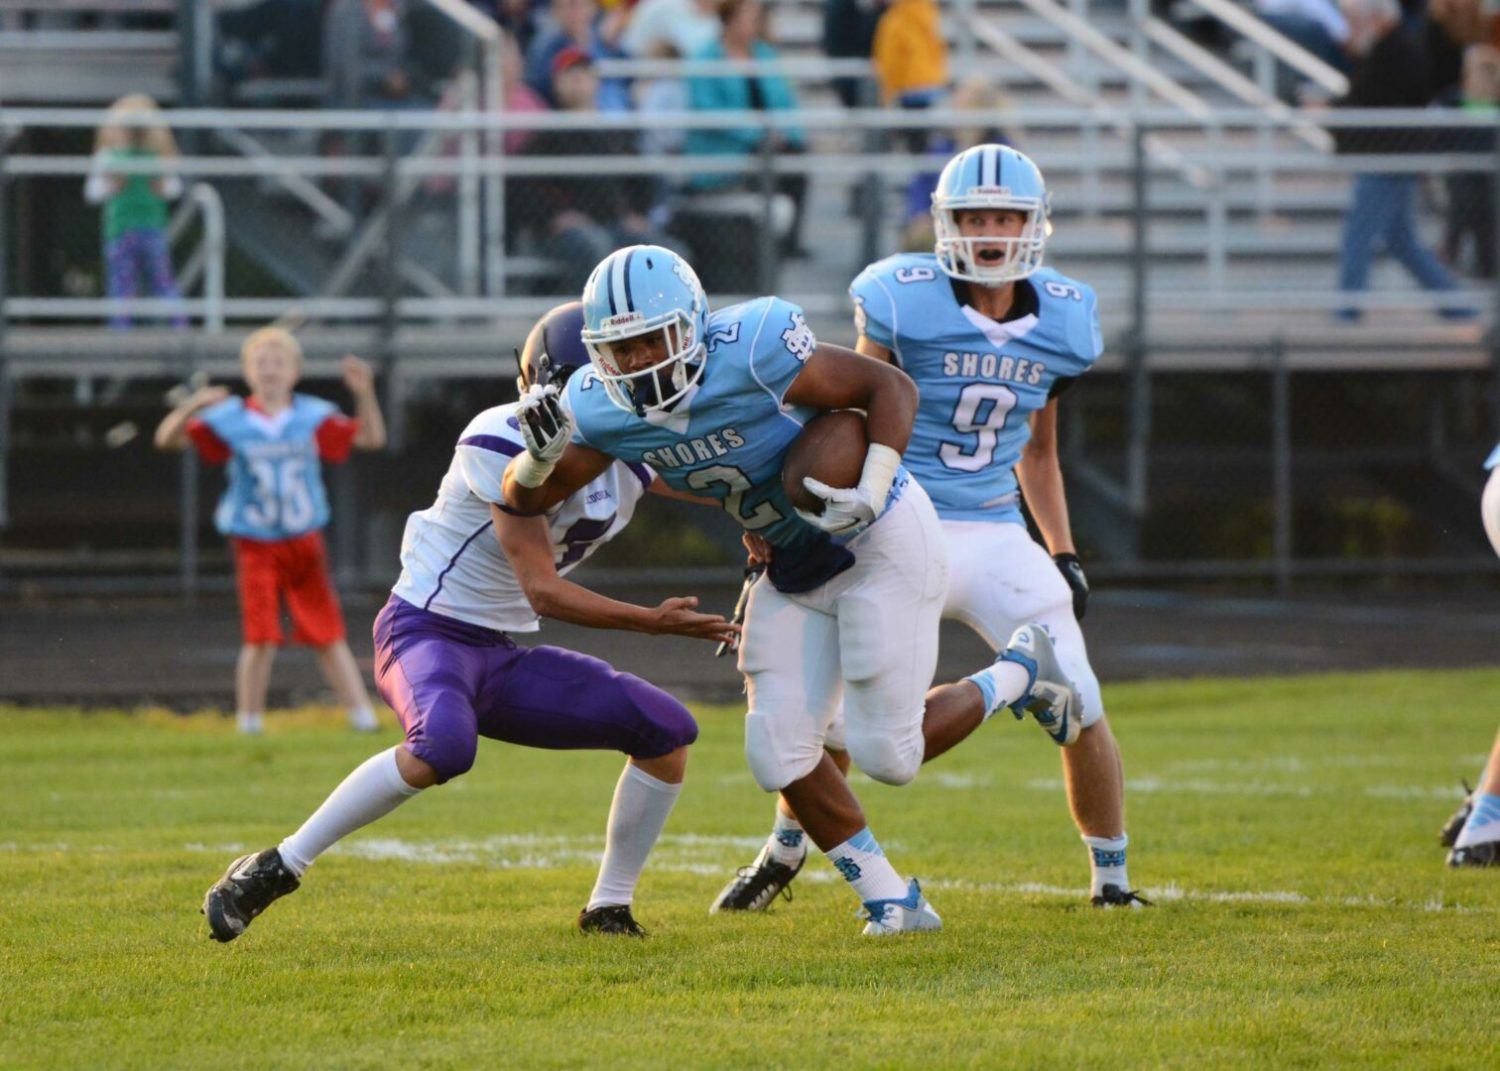 Mona Shores pulls away in the second half for a 61-20 win over Zeeland East